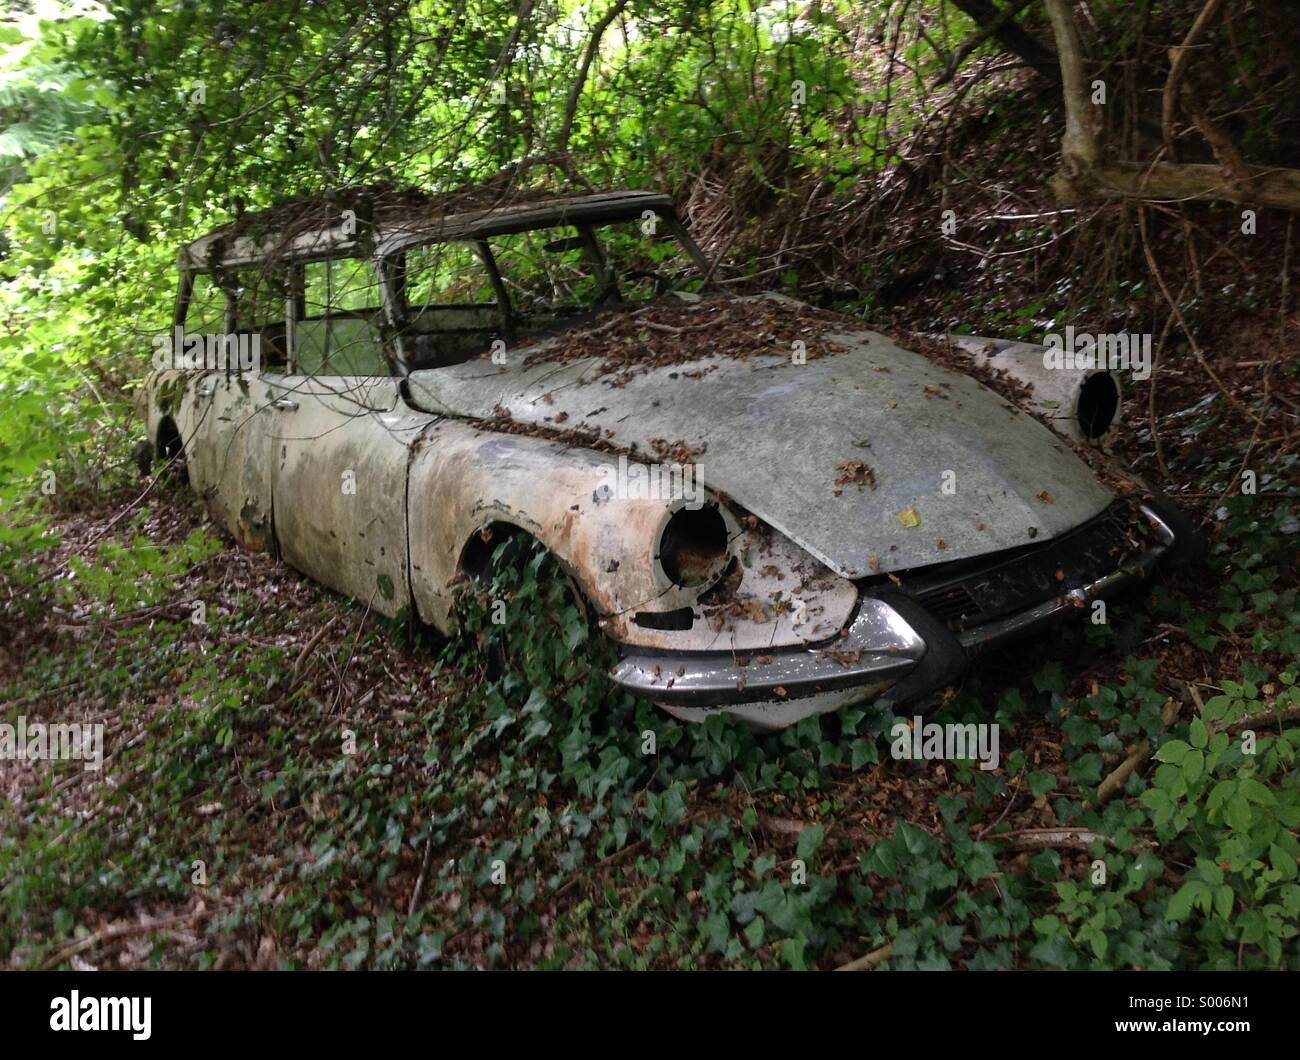 Bourganeuf, France: An old rusting classic car, a Citroen DS estate ...